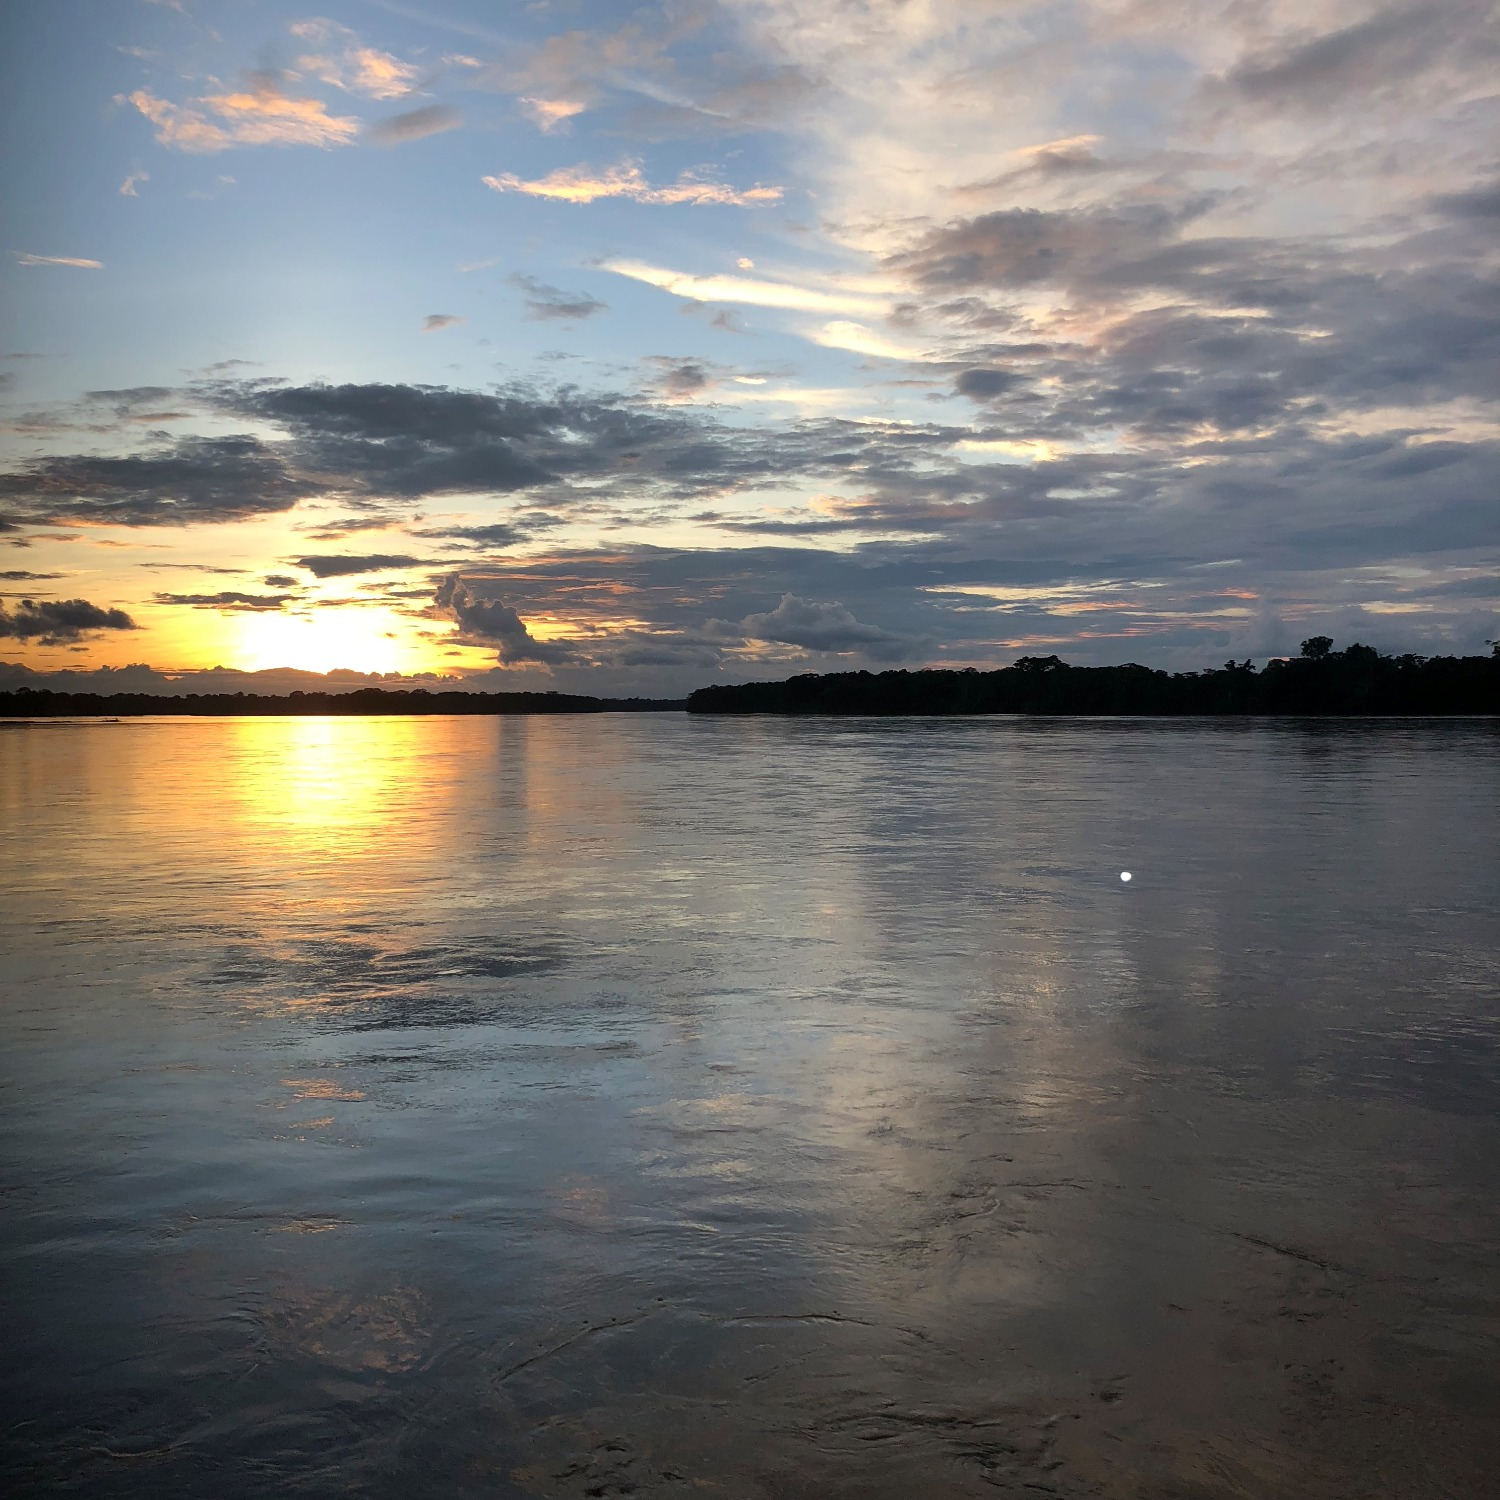 Sunset on the Napo River, Ecuador